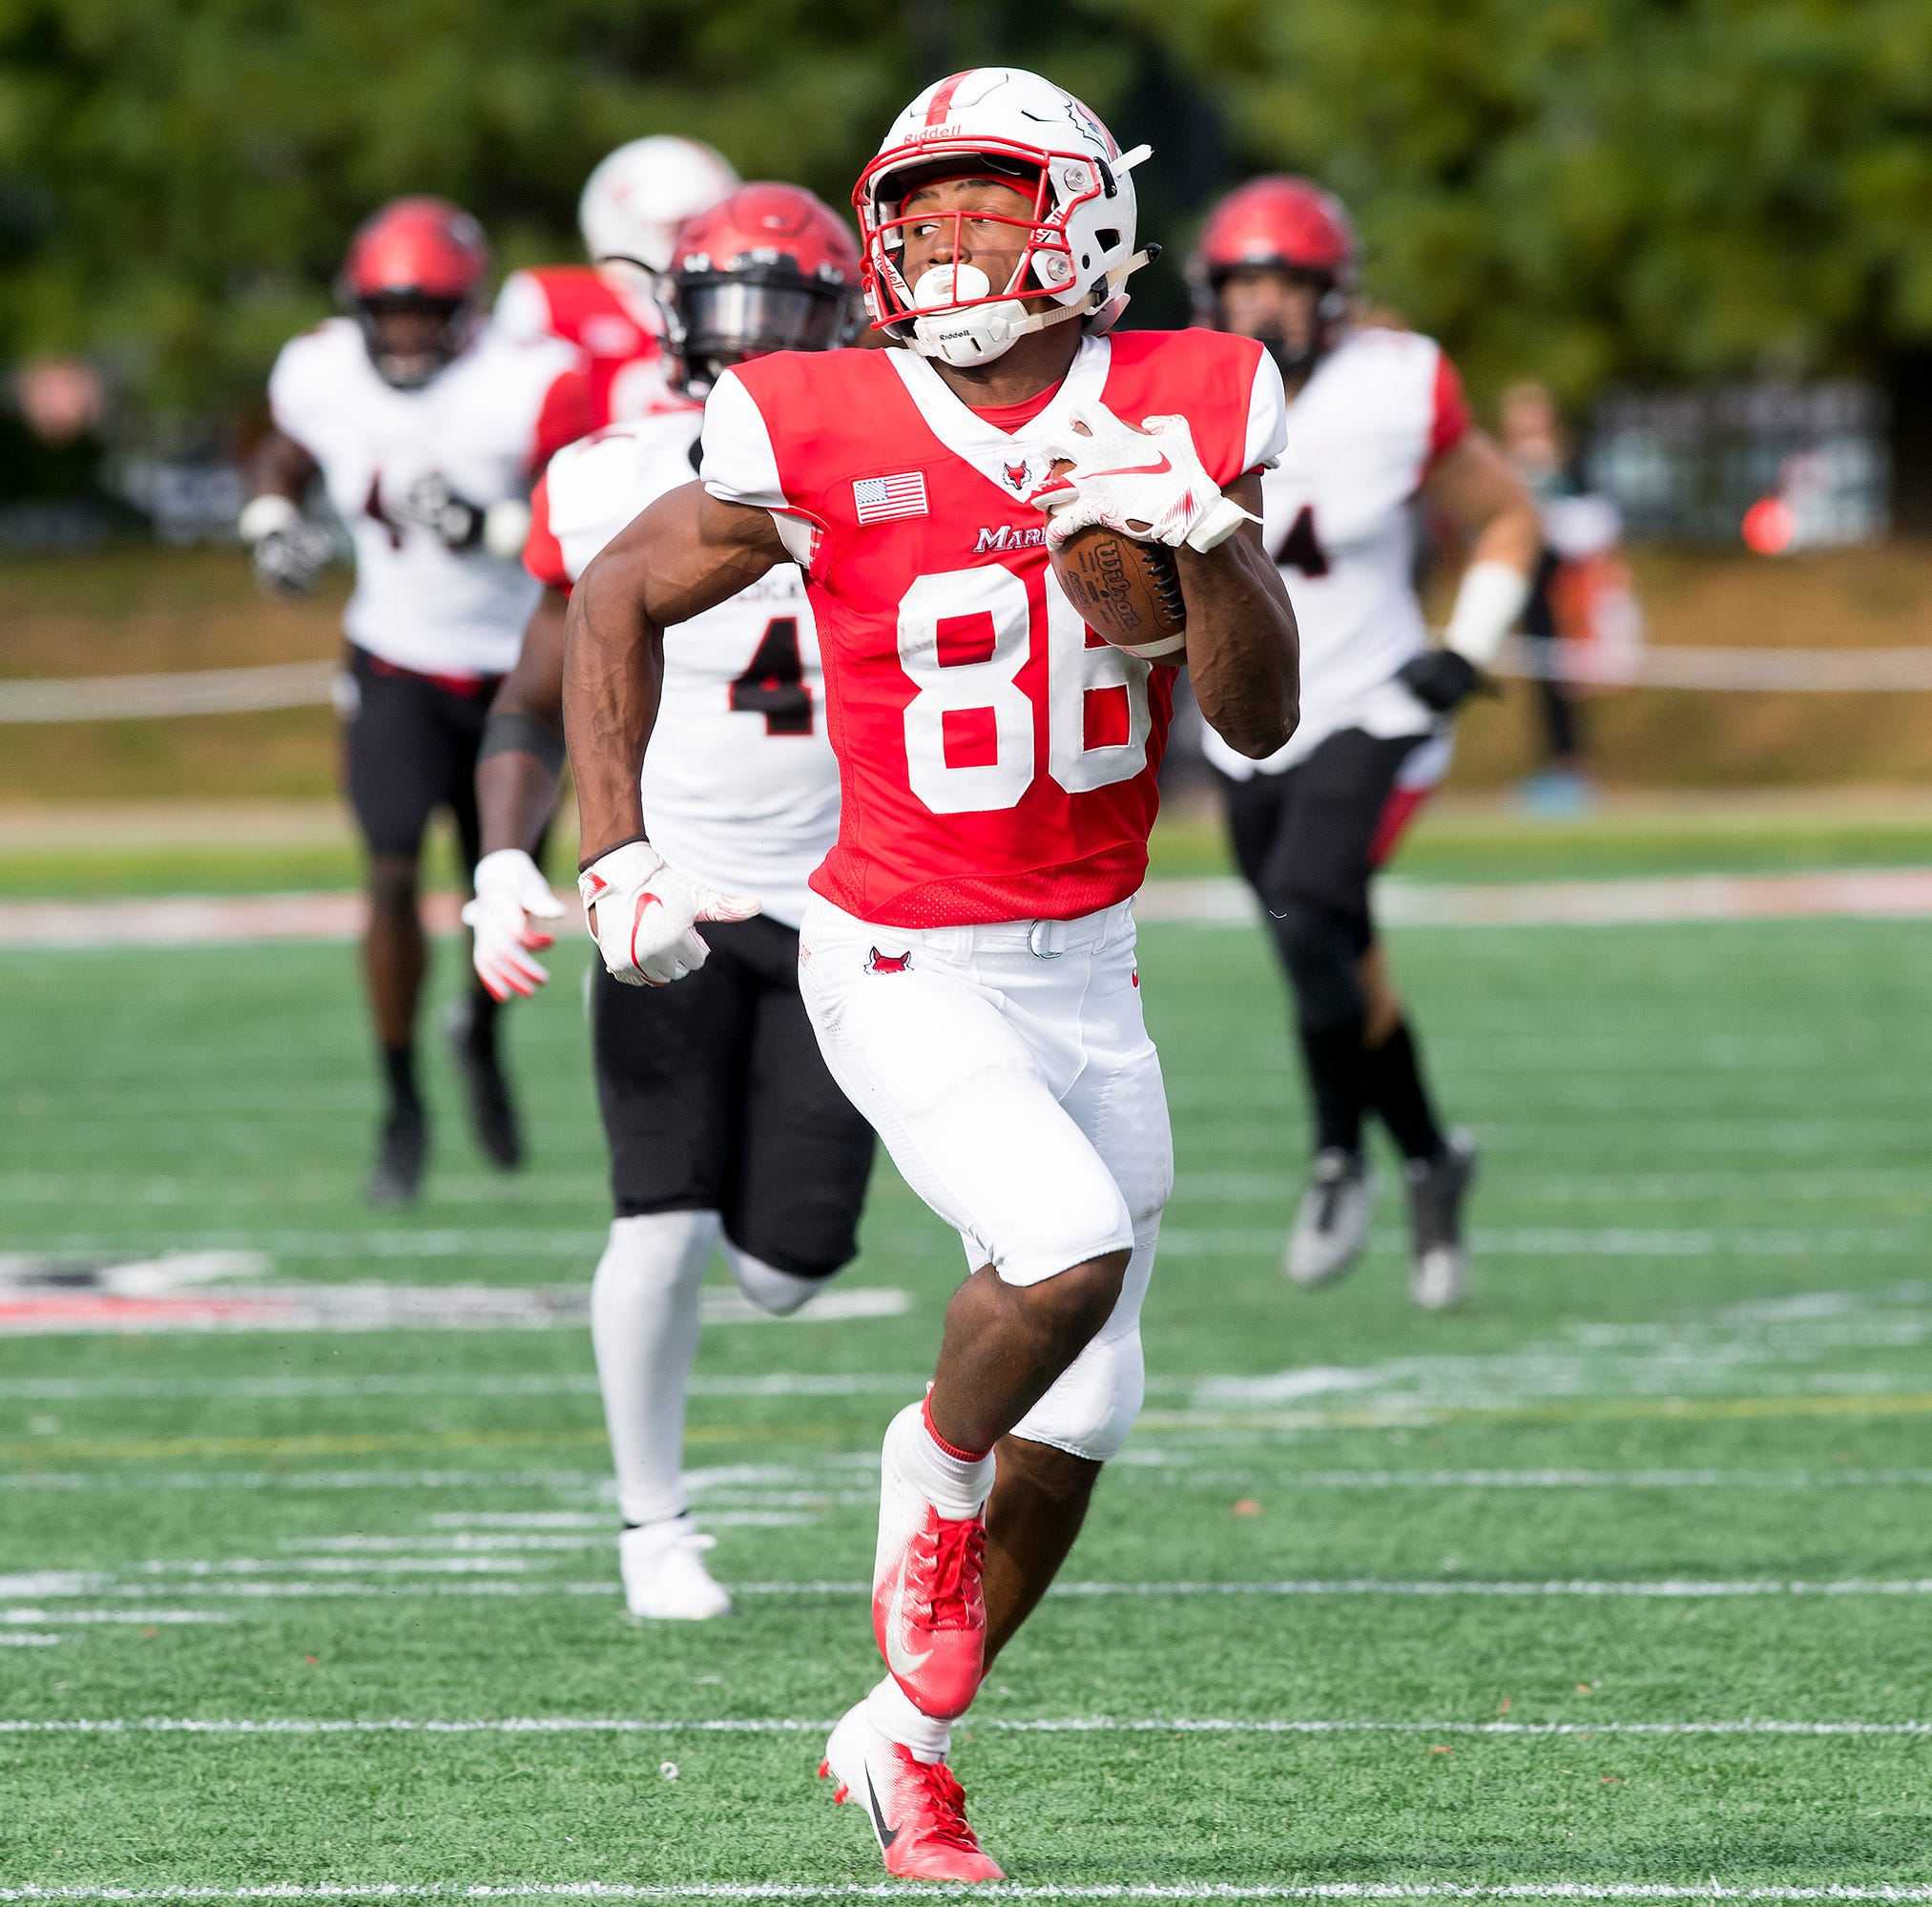 Marist wide receiver Juston Christian signed by Baltimore Ravens, aims for NFL career